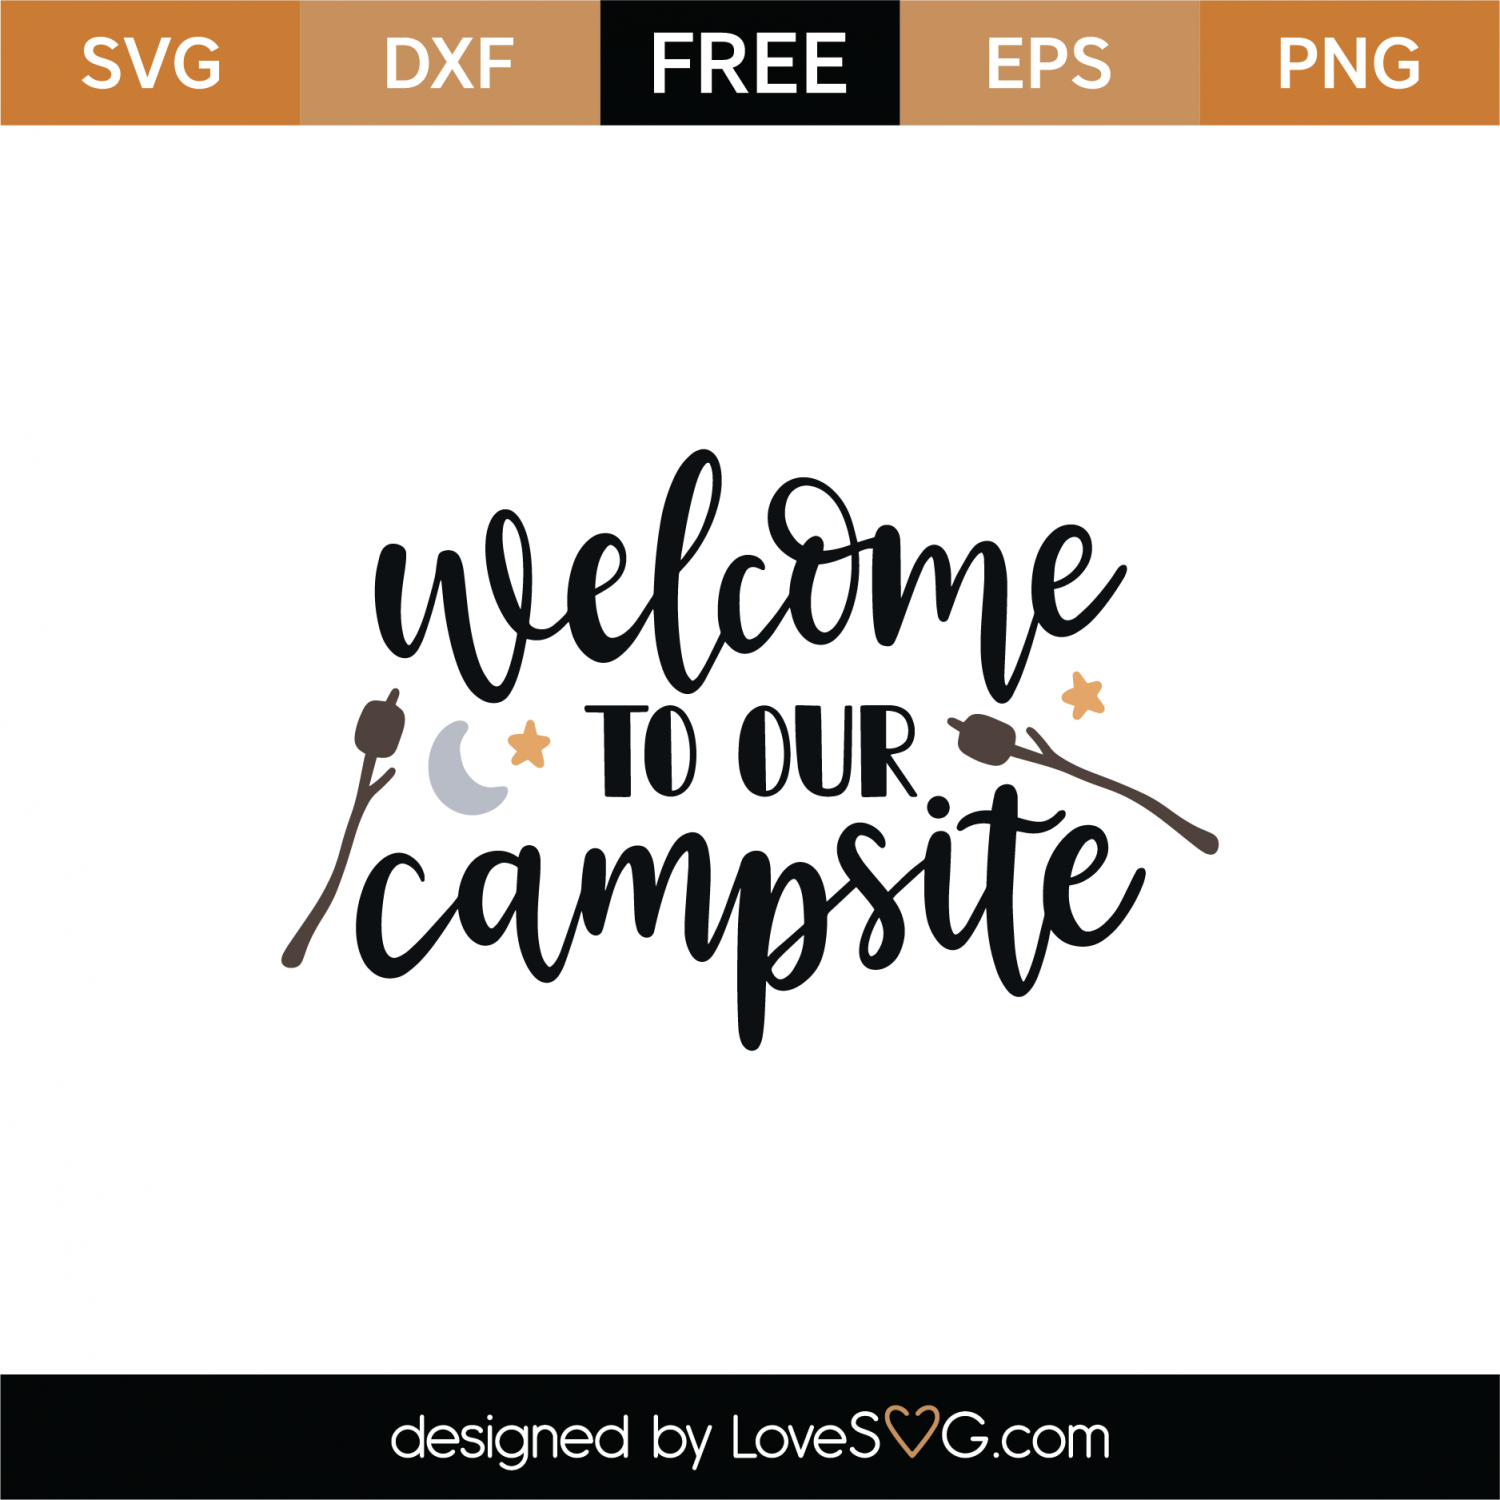 Free Welcome To Our Campsite Svg Cut File Lovesvg Com